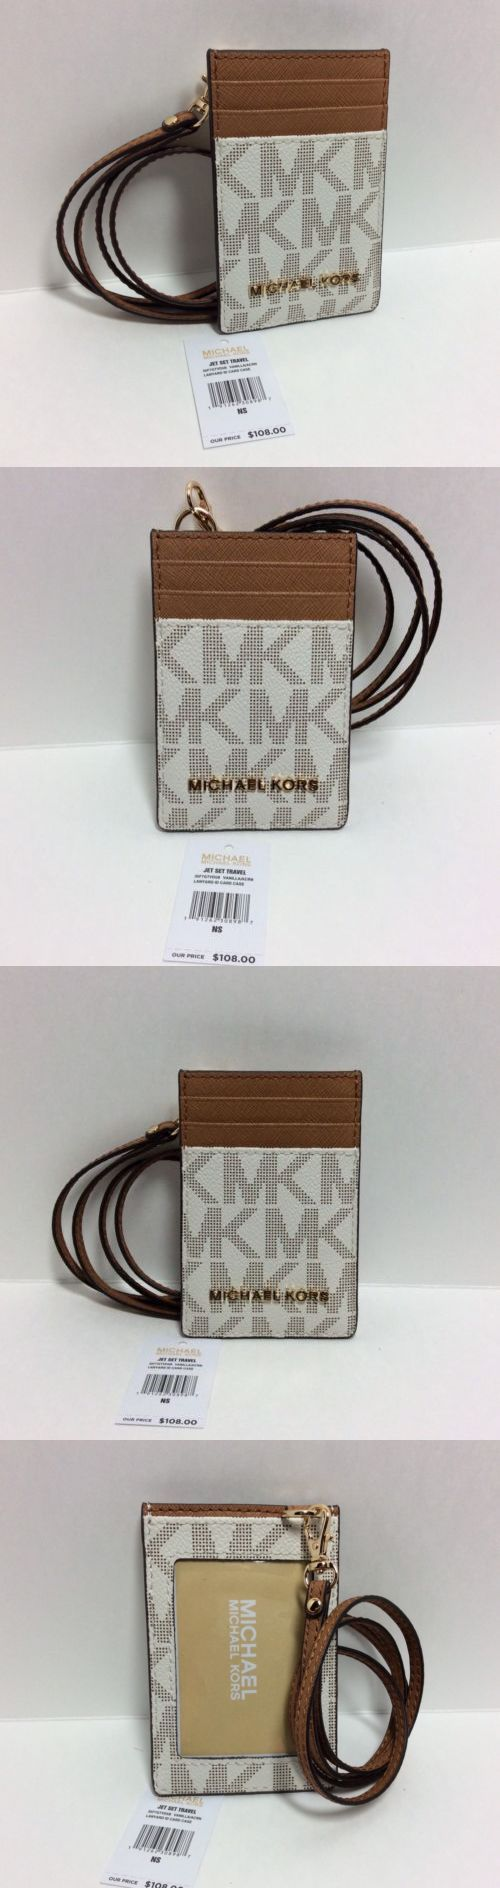 d150b7661e9d ID and Badge Holders 169287  New Michael Kors Jet Set Travel Pvc Lanyard Id  Card Case In Vanilla Acorn  108 -  BUY IT NOW ONLY   35 on eBay!